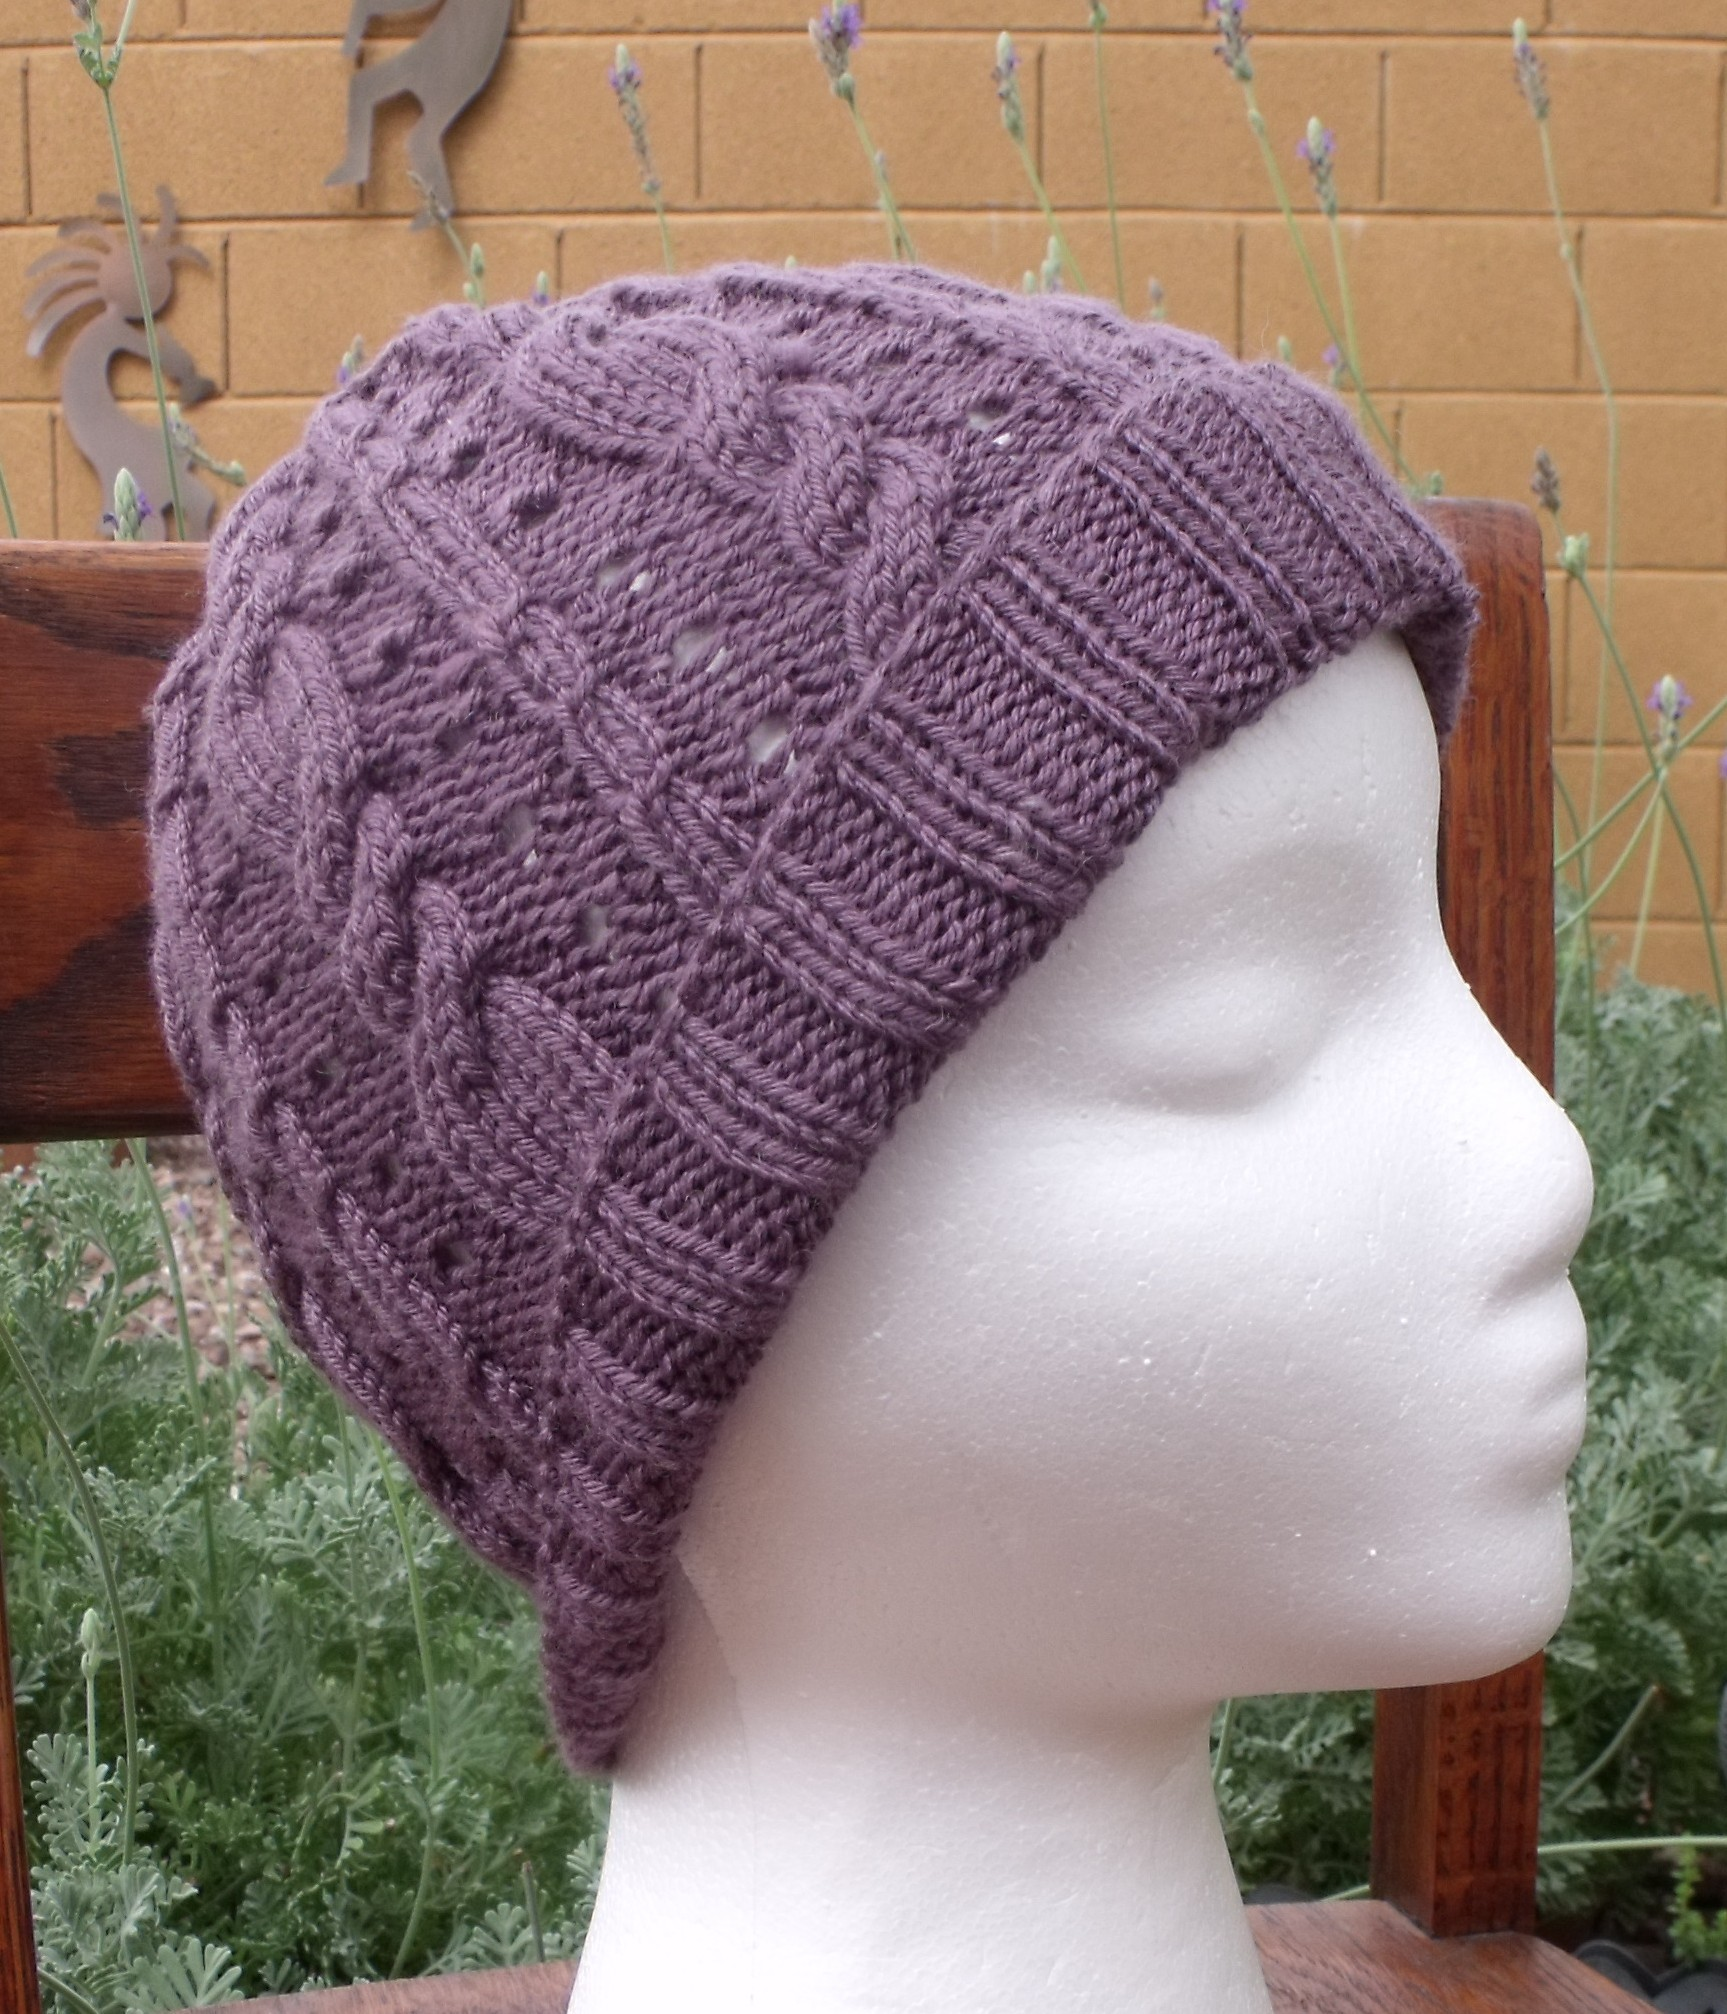 Knitting Caps Patterns : Knitting Patterns Free Hats images